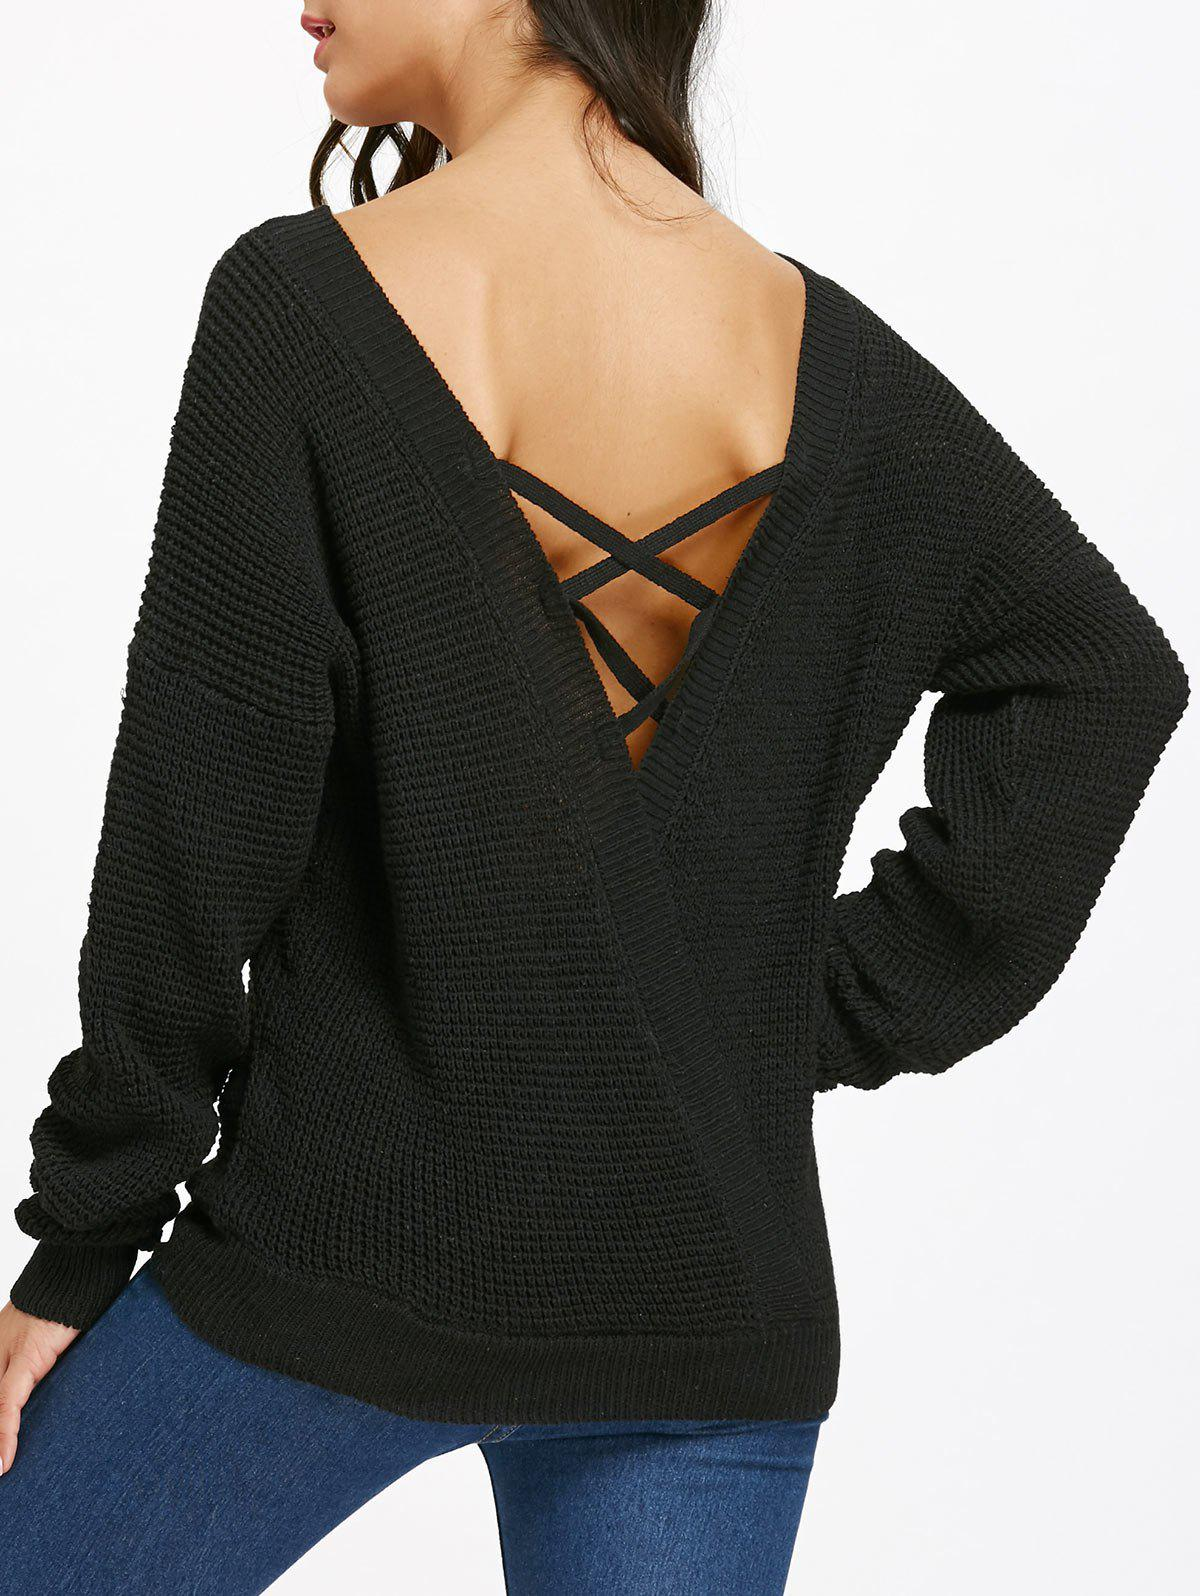 Chic Criss Cross Backless Drop Shoulder Jumper Sweater